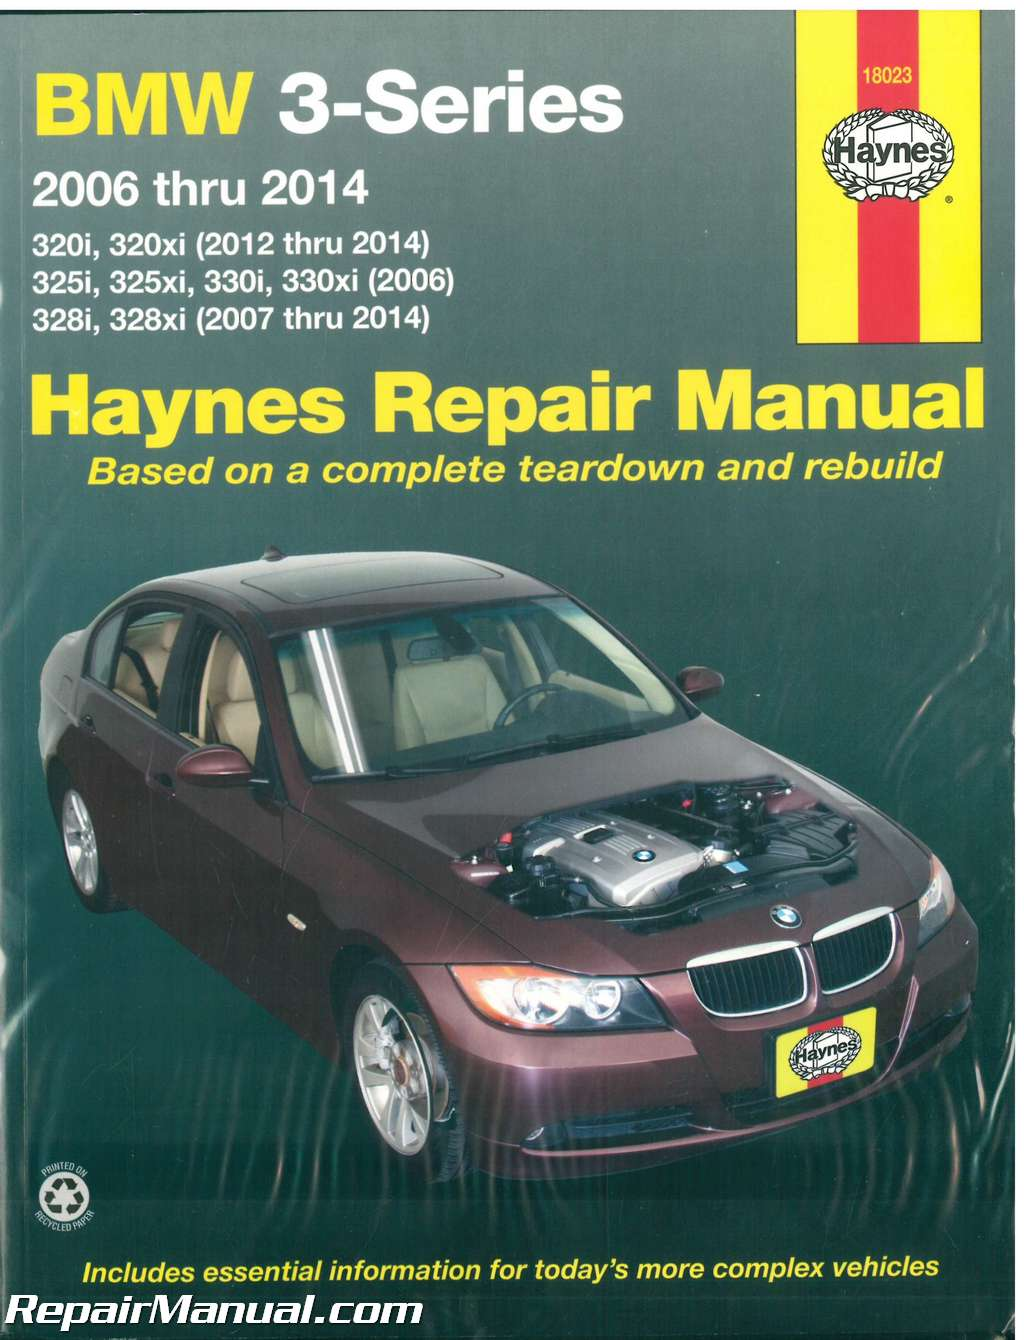 BMW 3 Series 2006-2014 Automotive Service Repair Manual_001